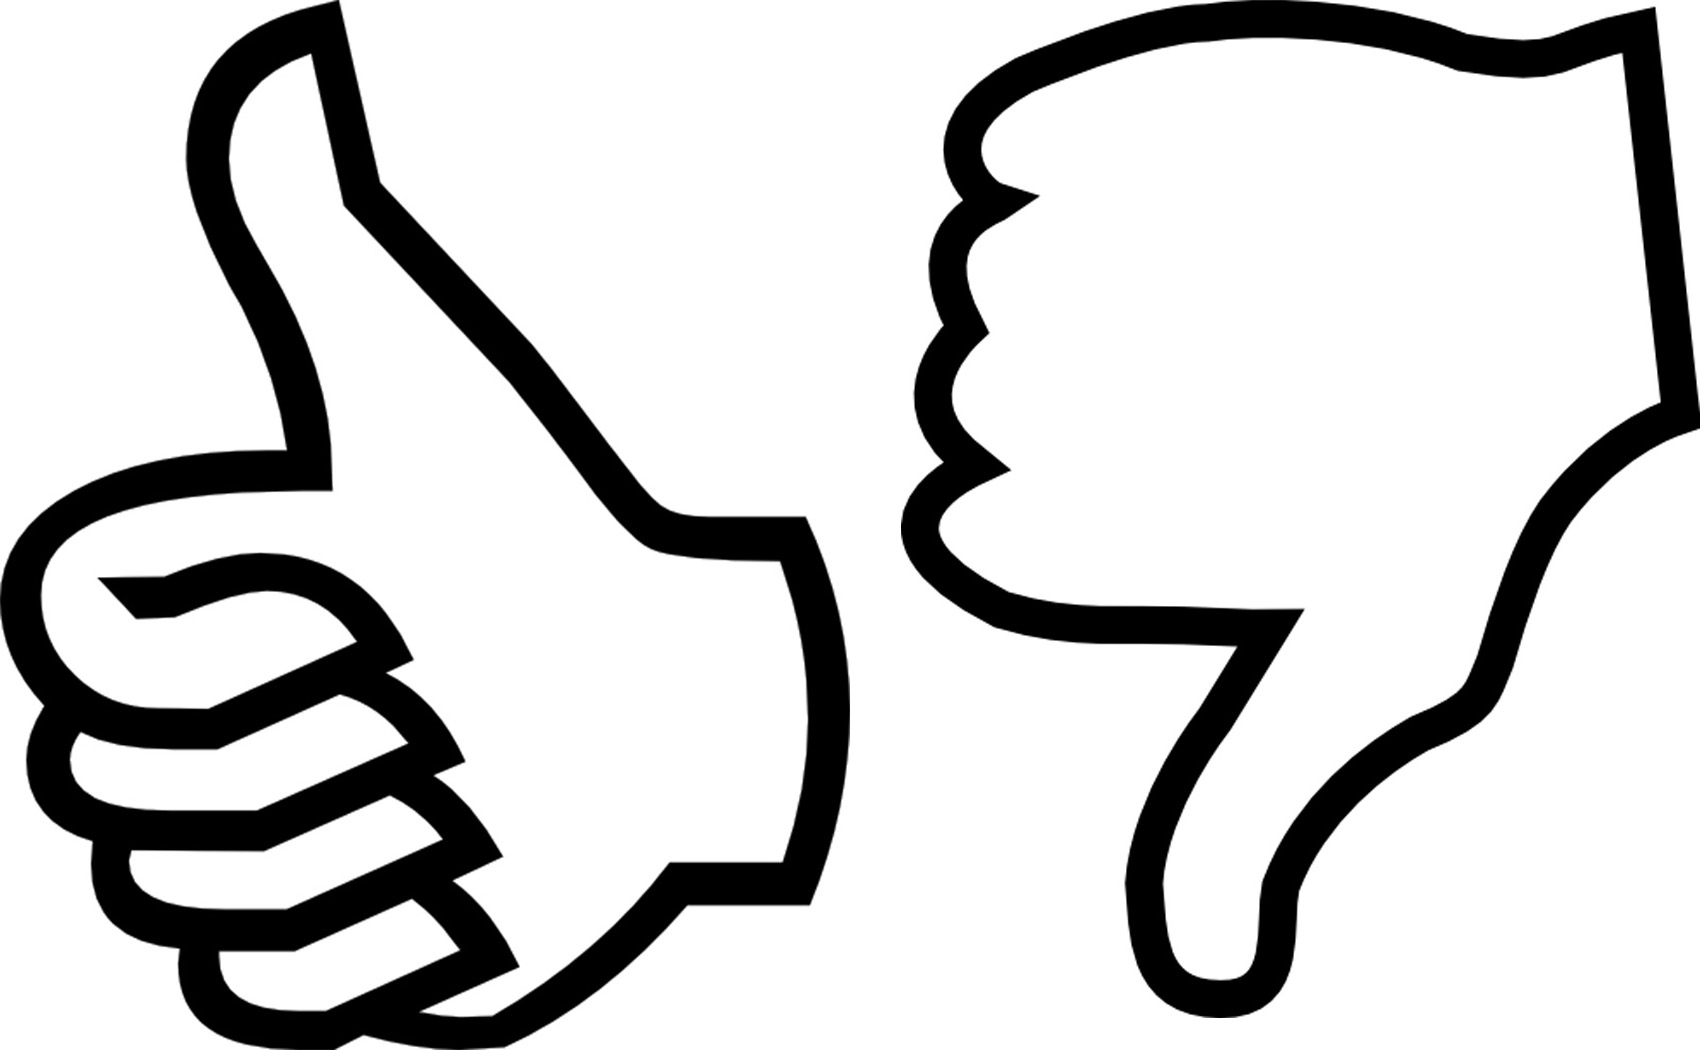 Thumbs down outline clipart svg library library White Thumbs Down - ClipArt Best svg library library